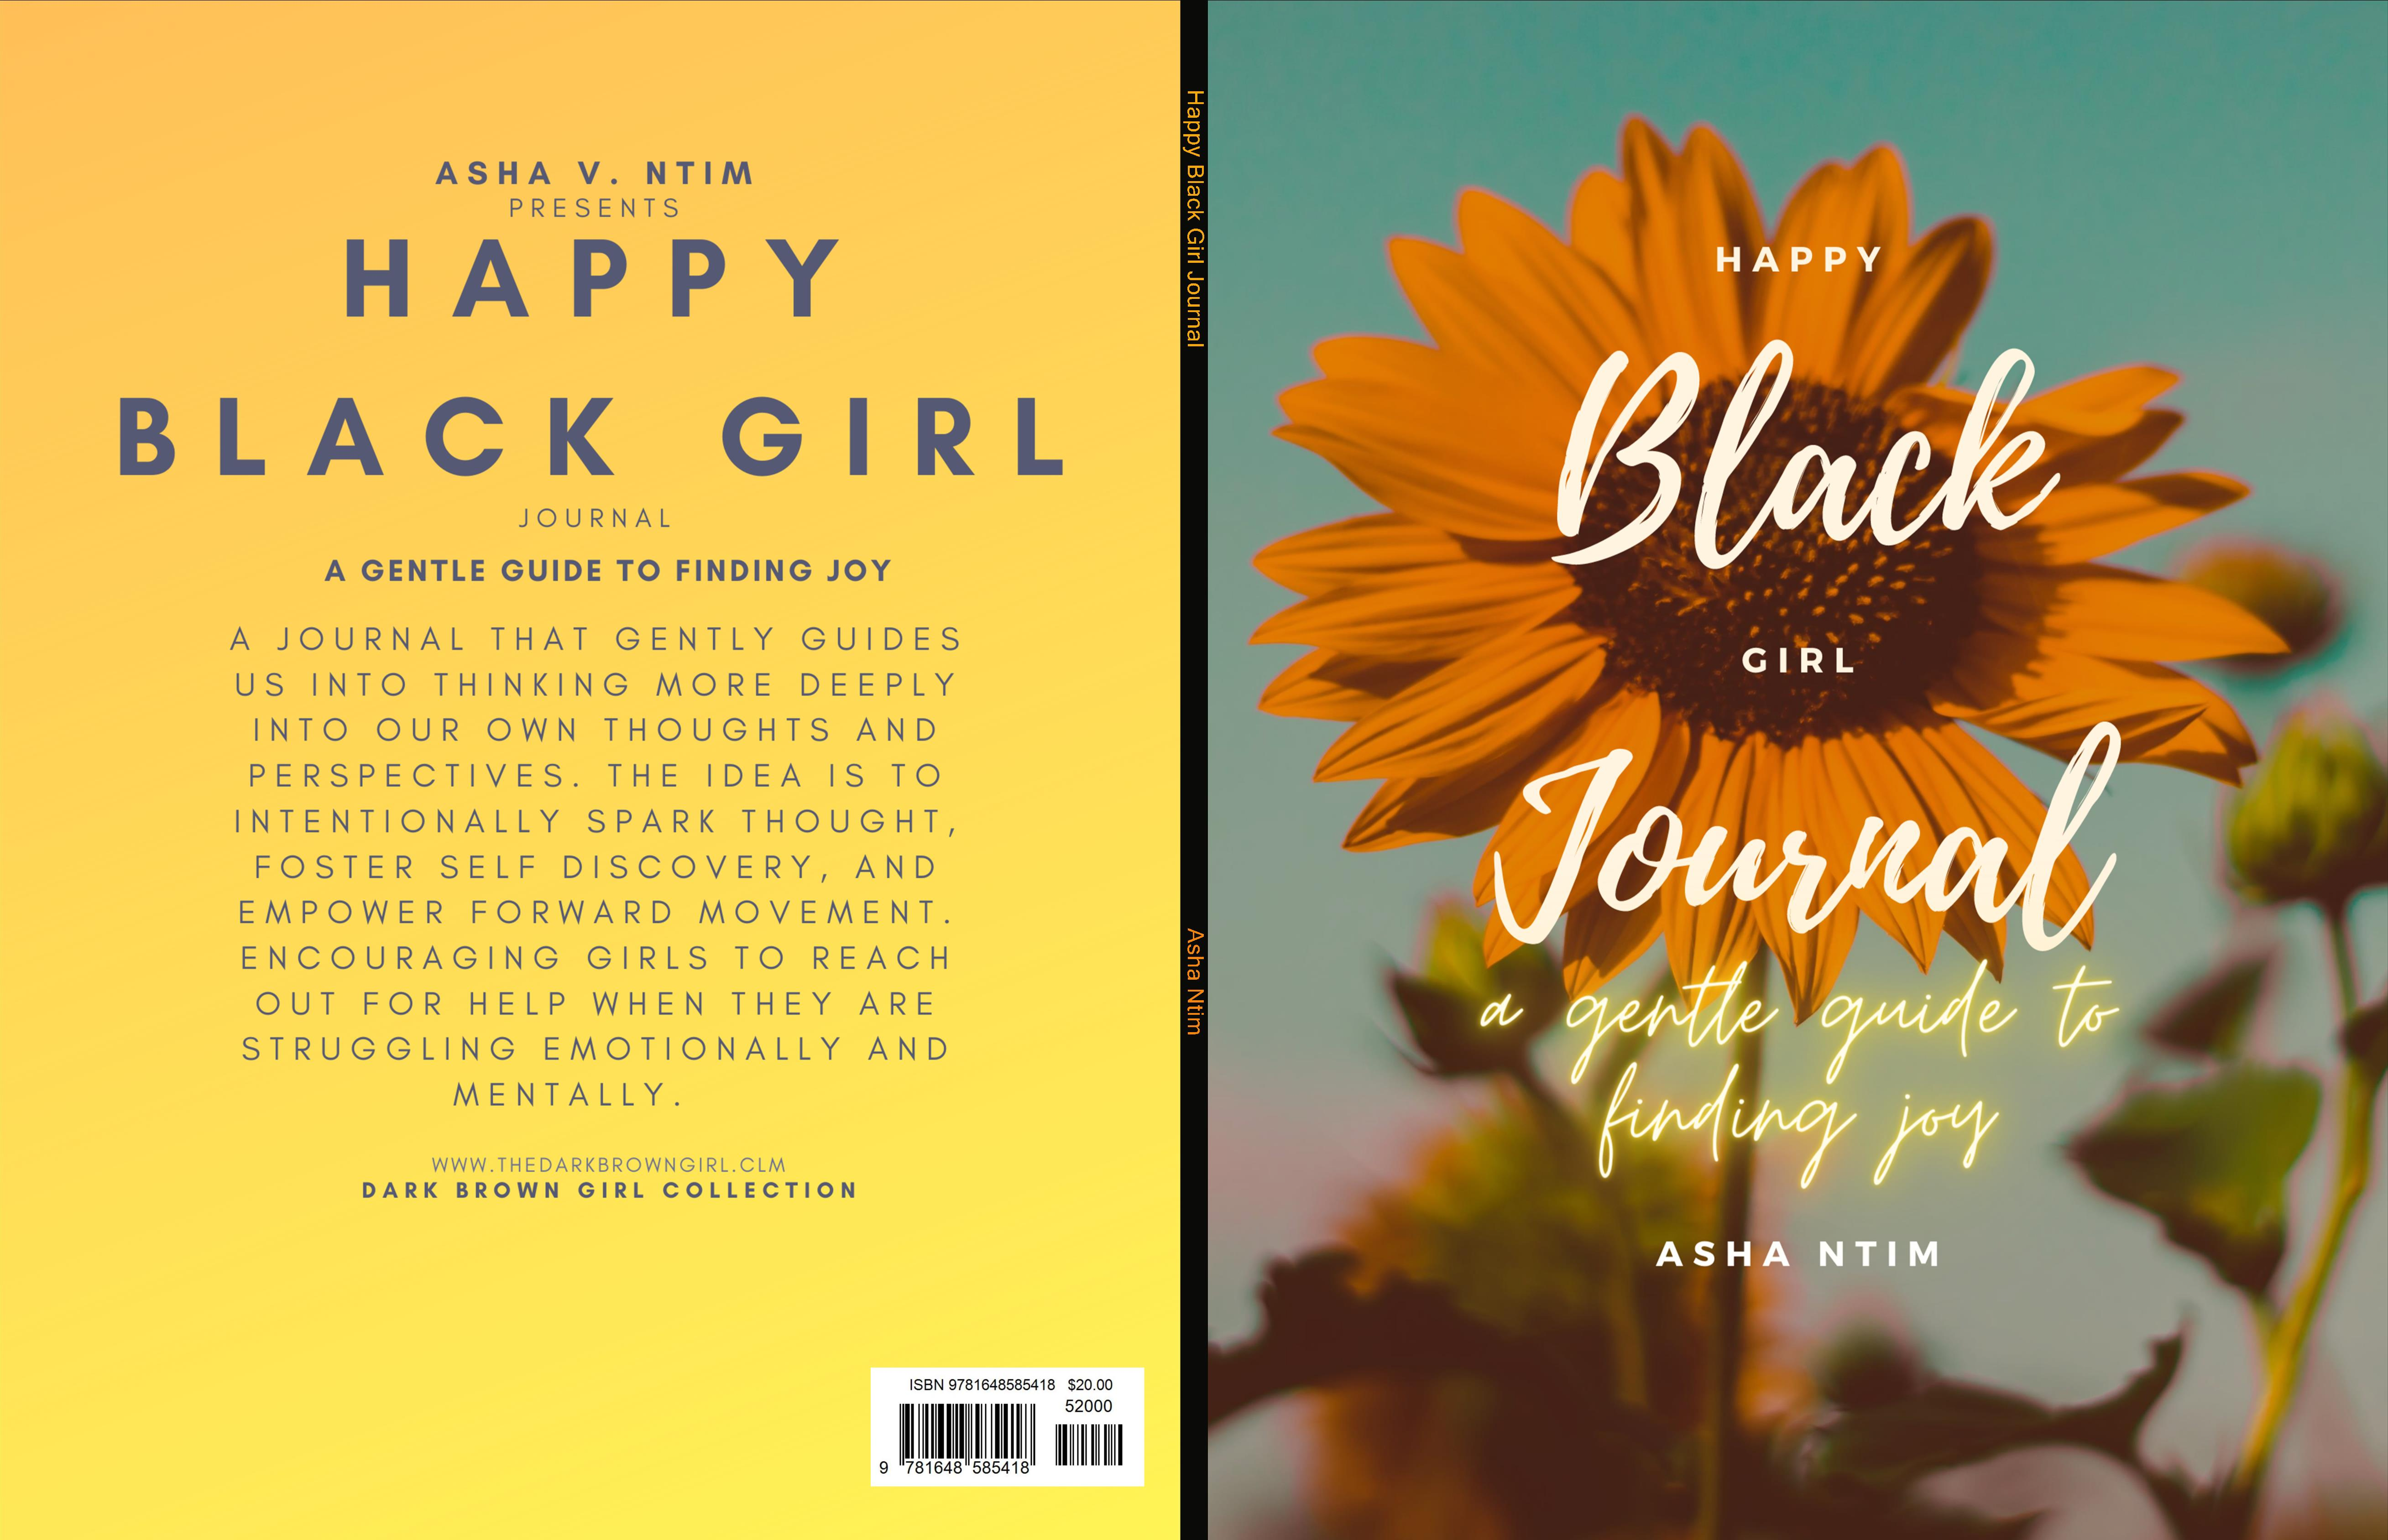 Happy Black Girl Journal cover image